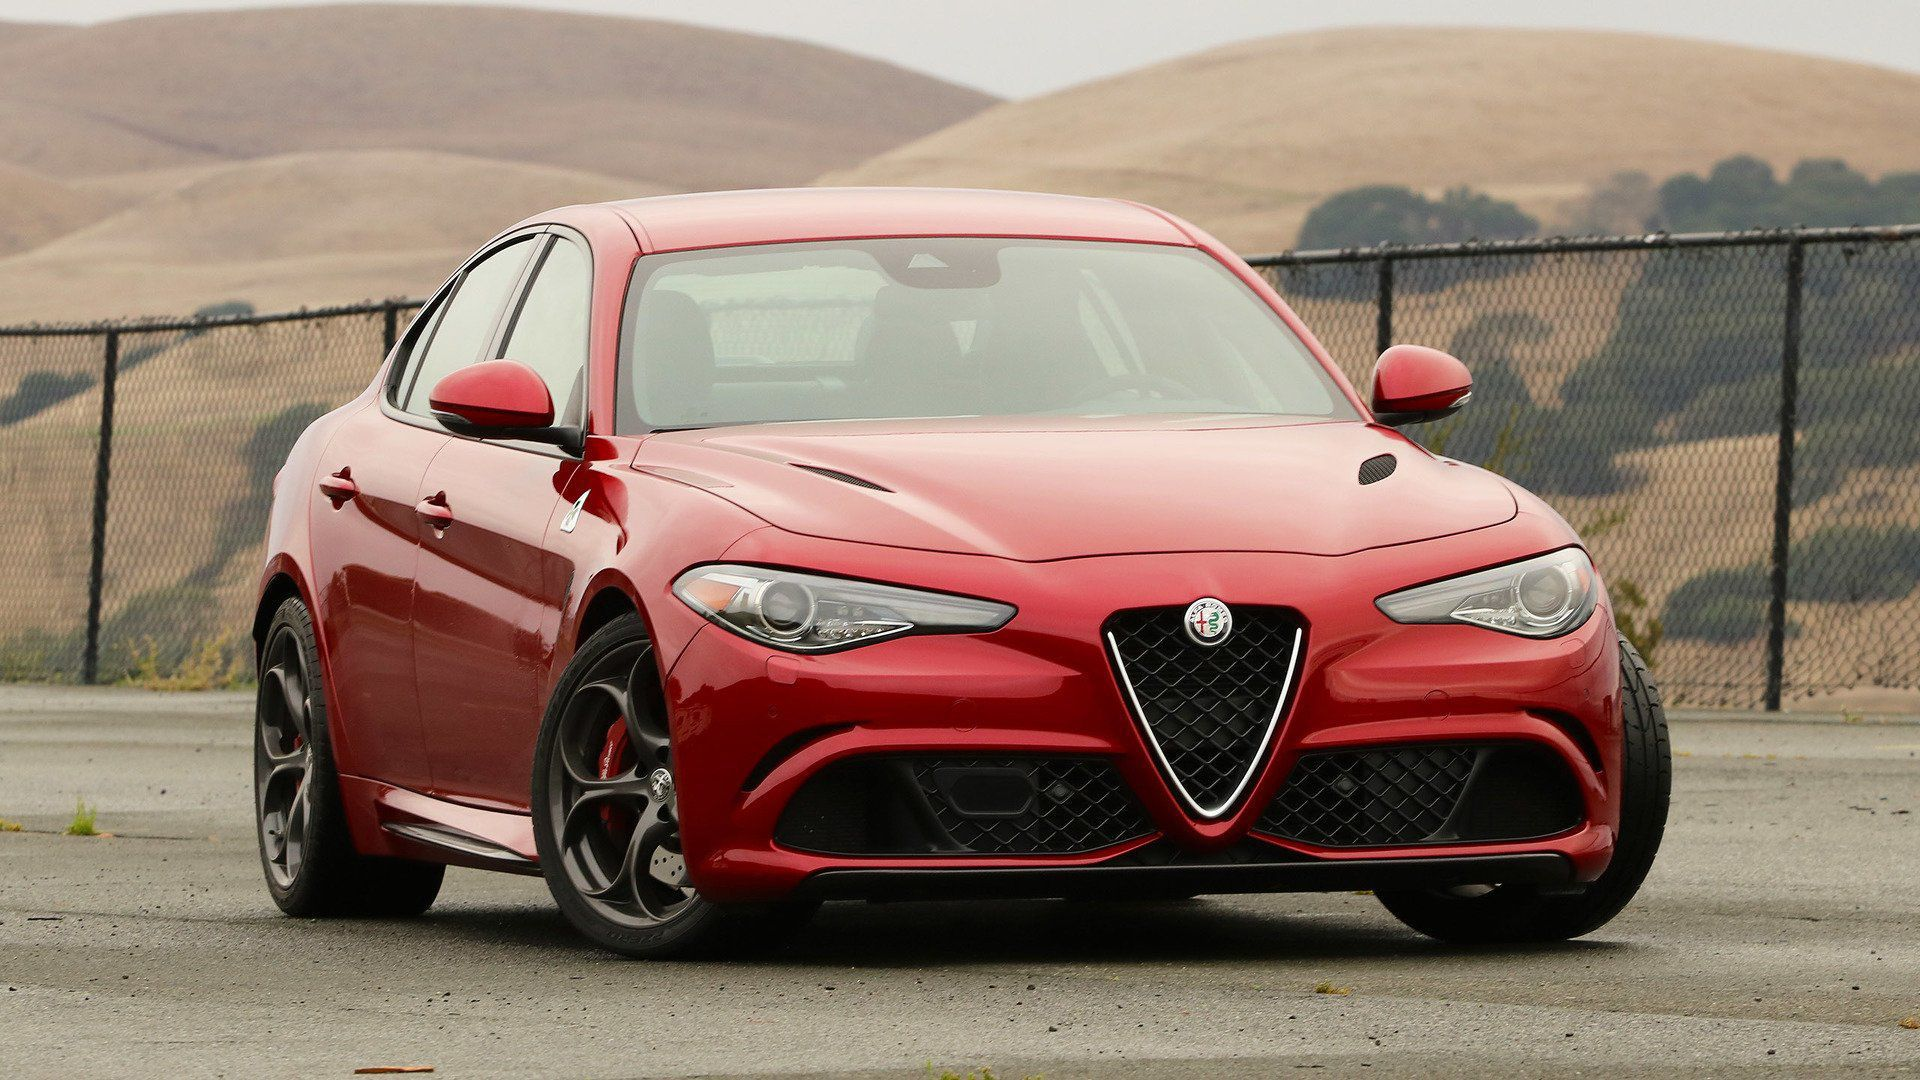 Alfa Romeo Giulia Wallpapers HD